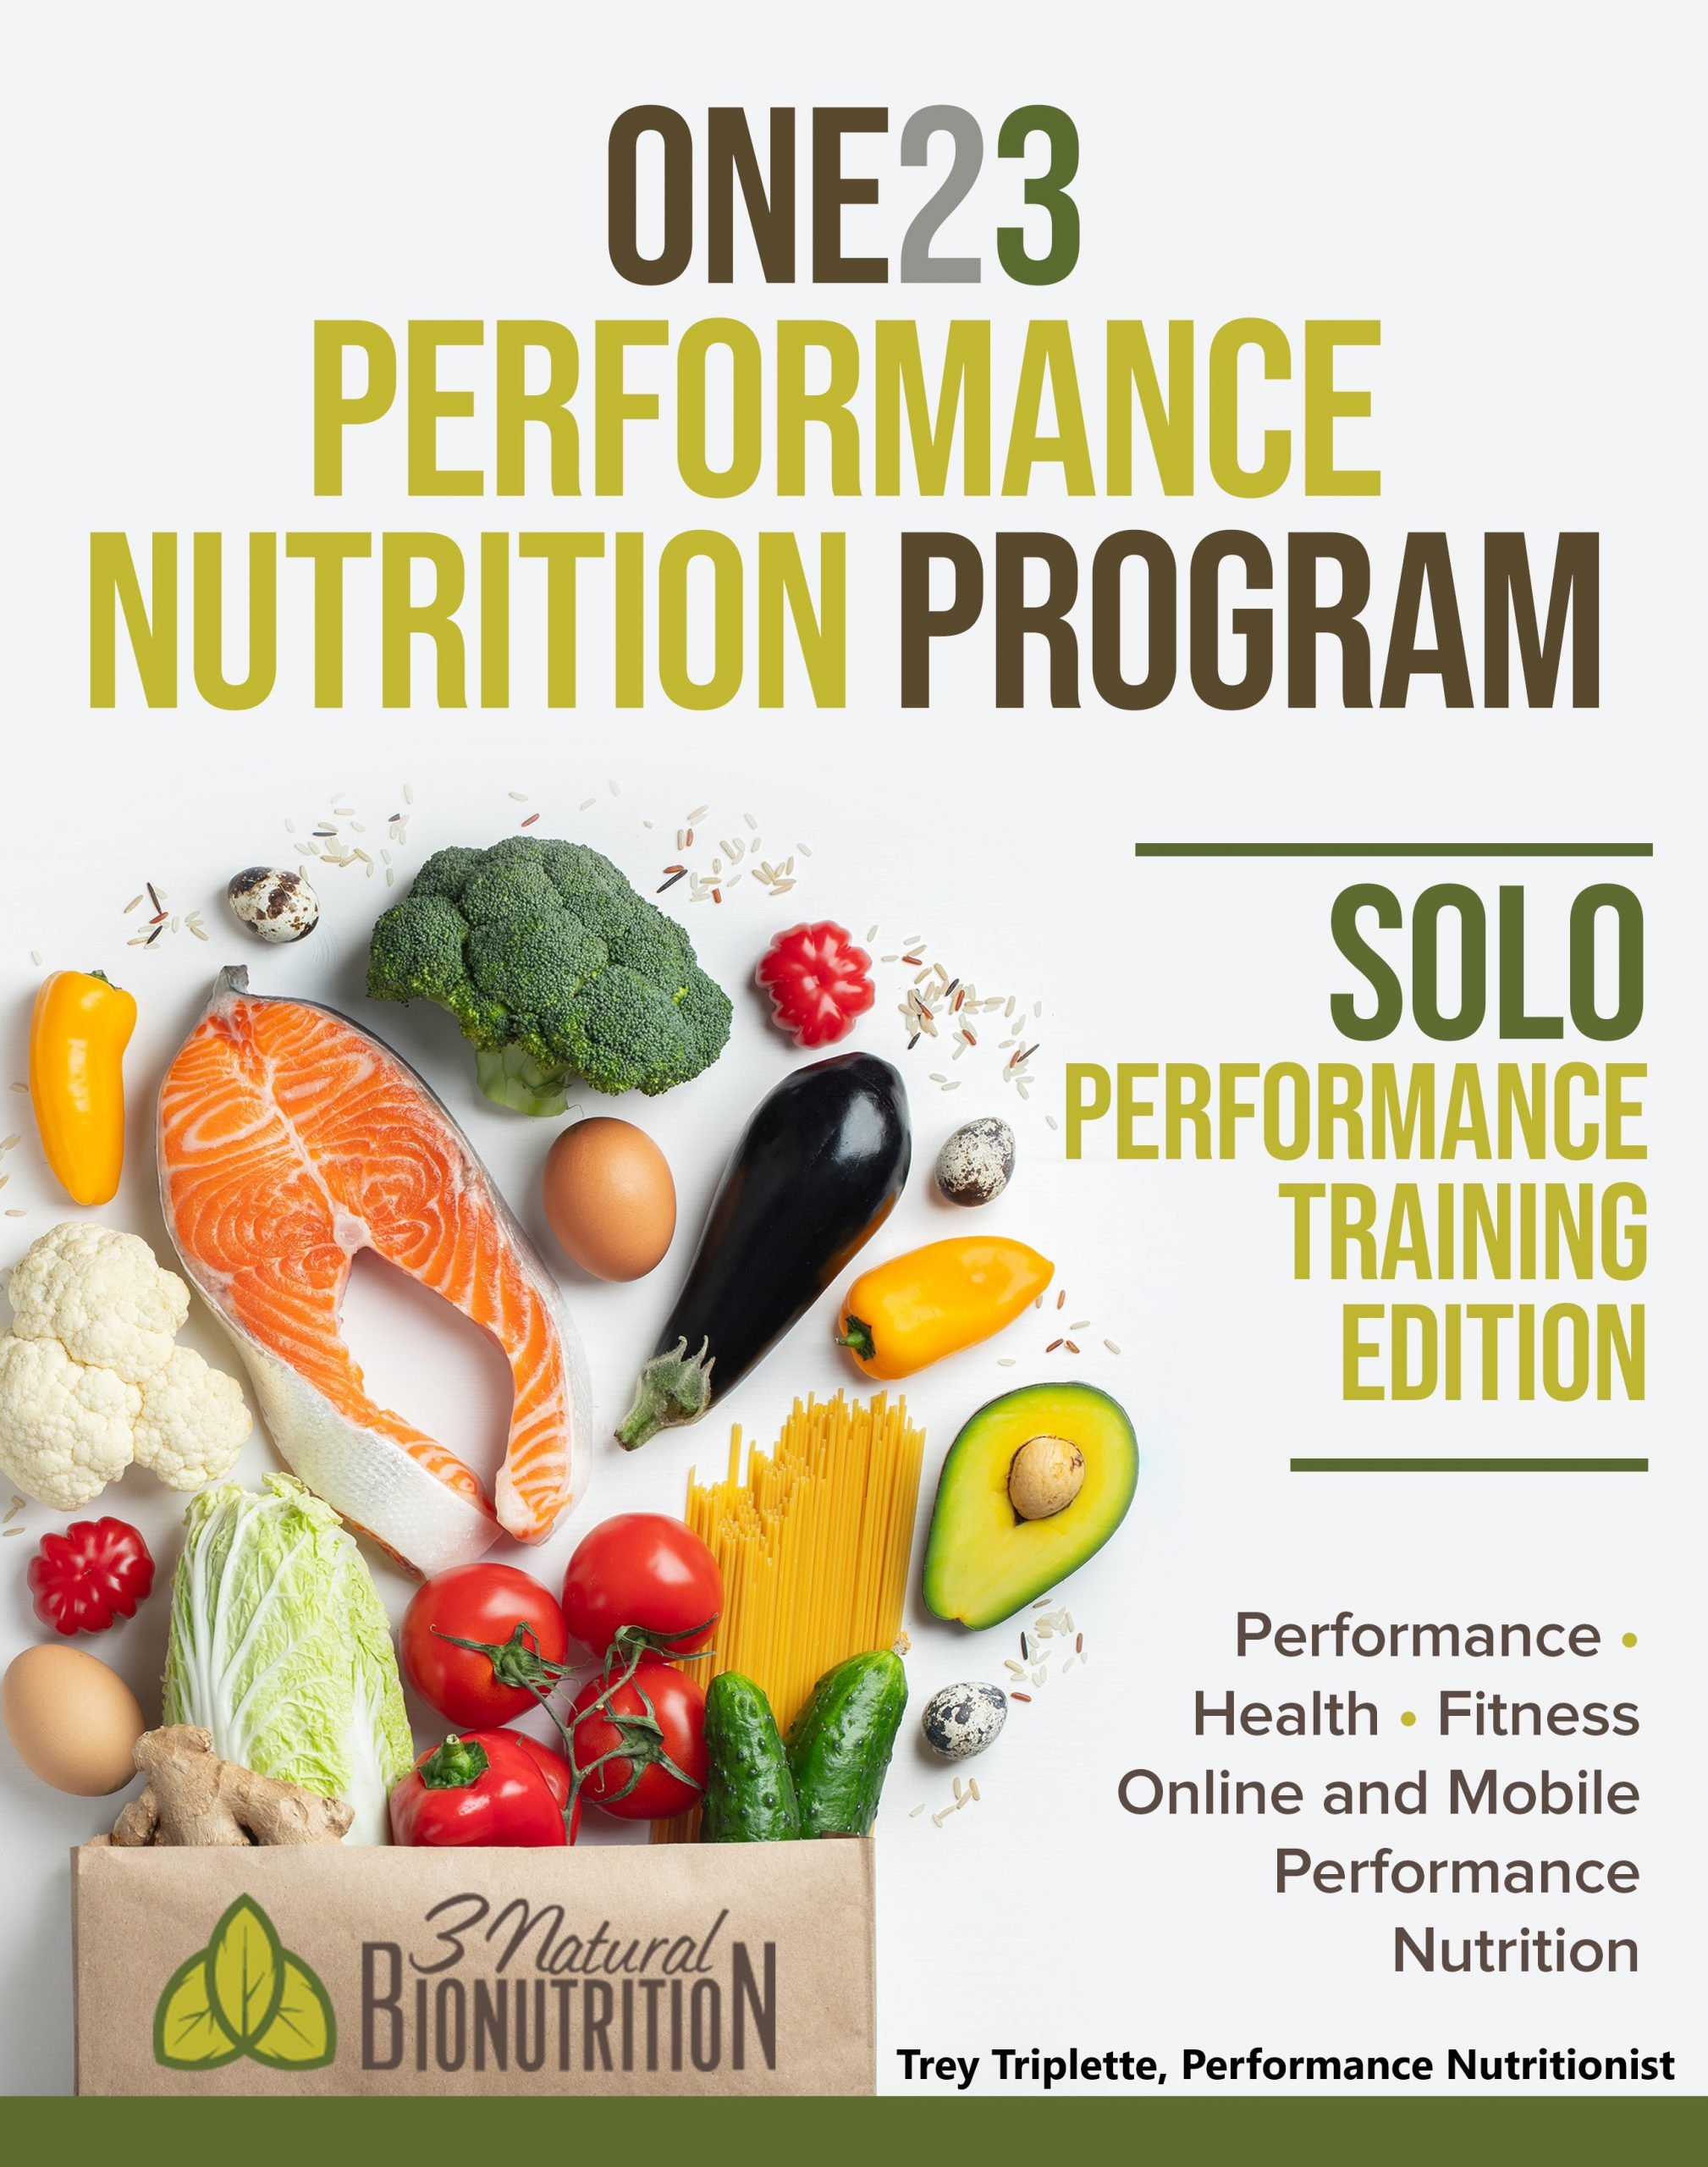 ONE23 PERFORMANCE NUTRITION PROGRAM, Solo Performance Training Program©